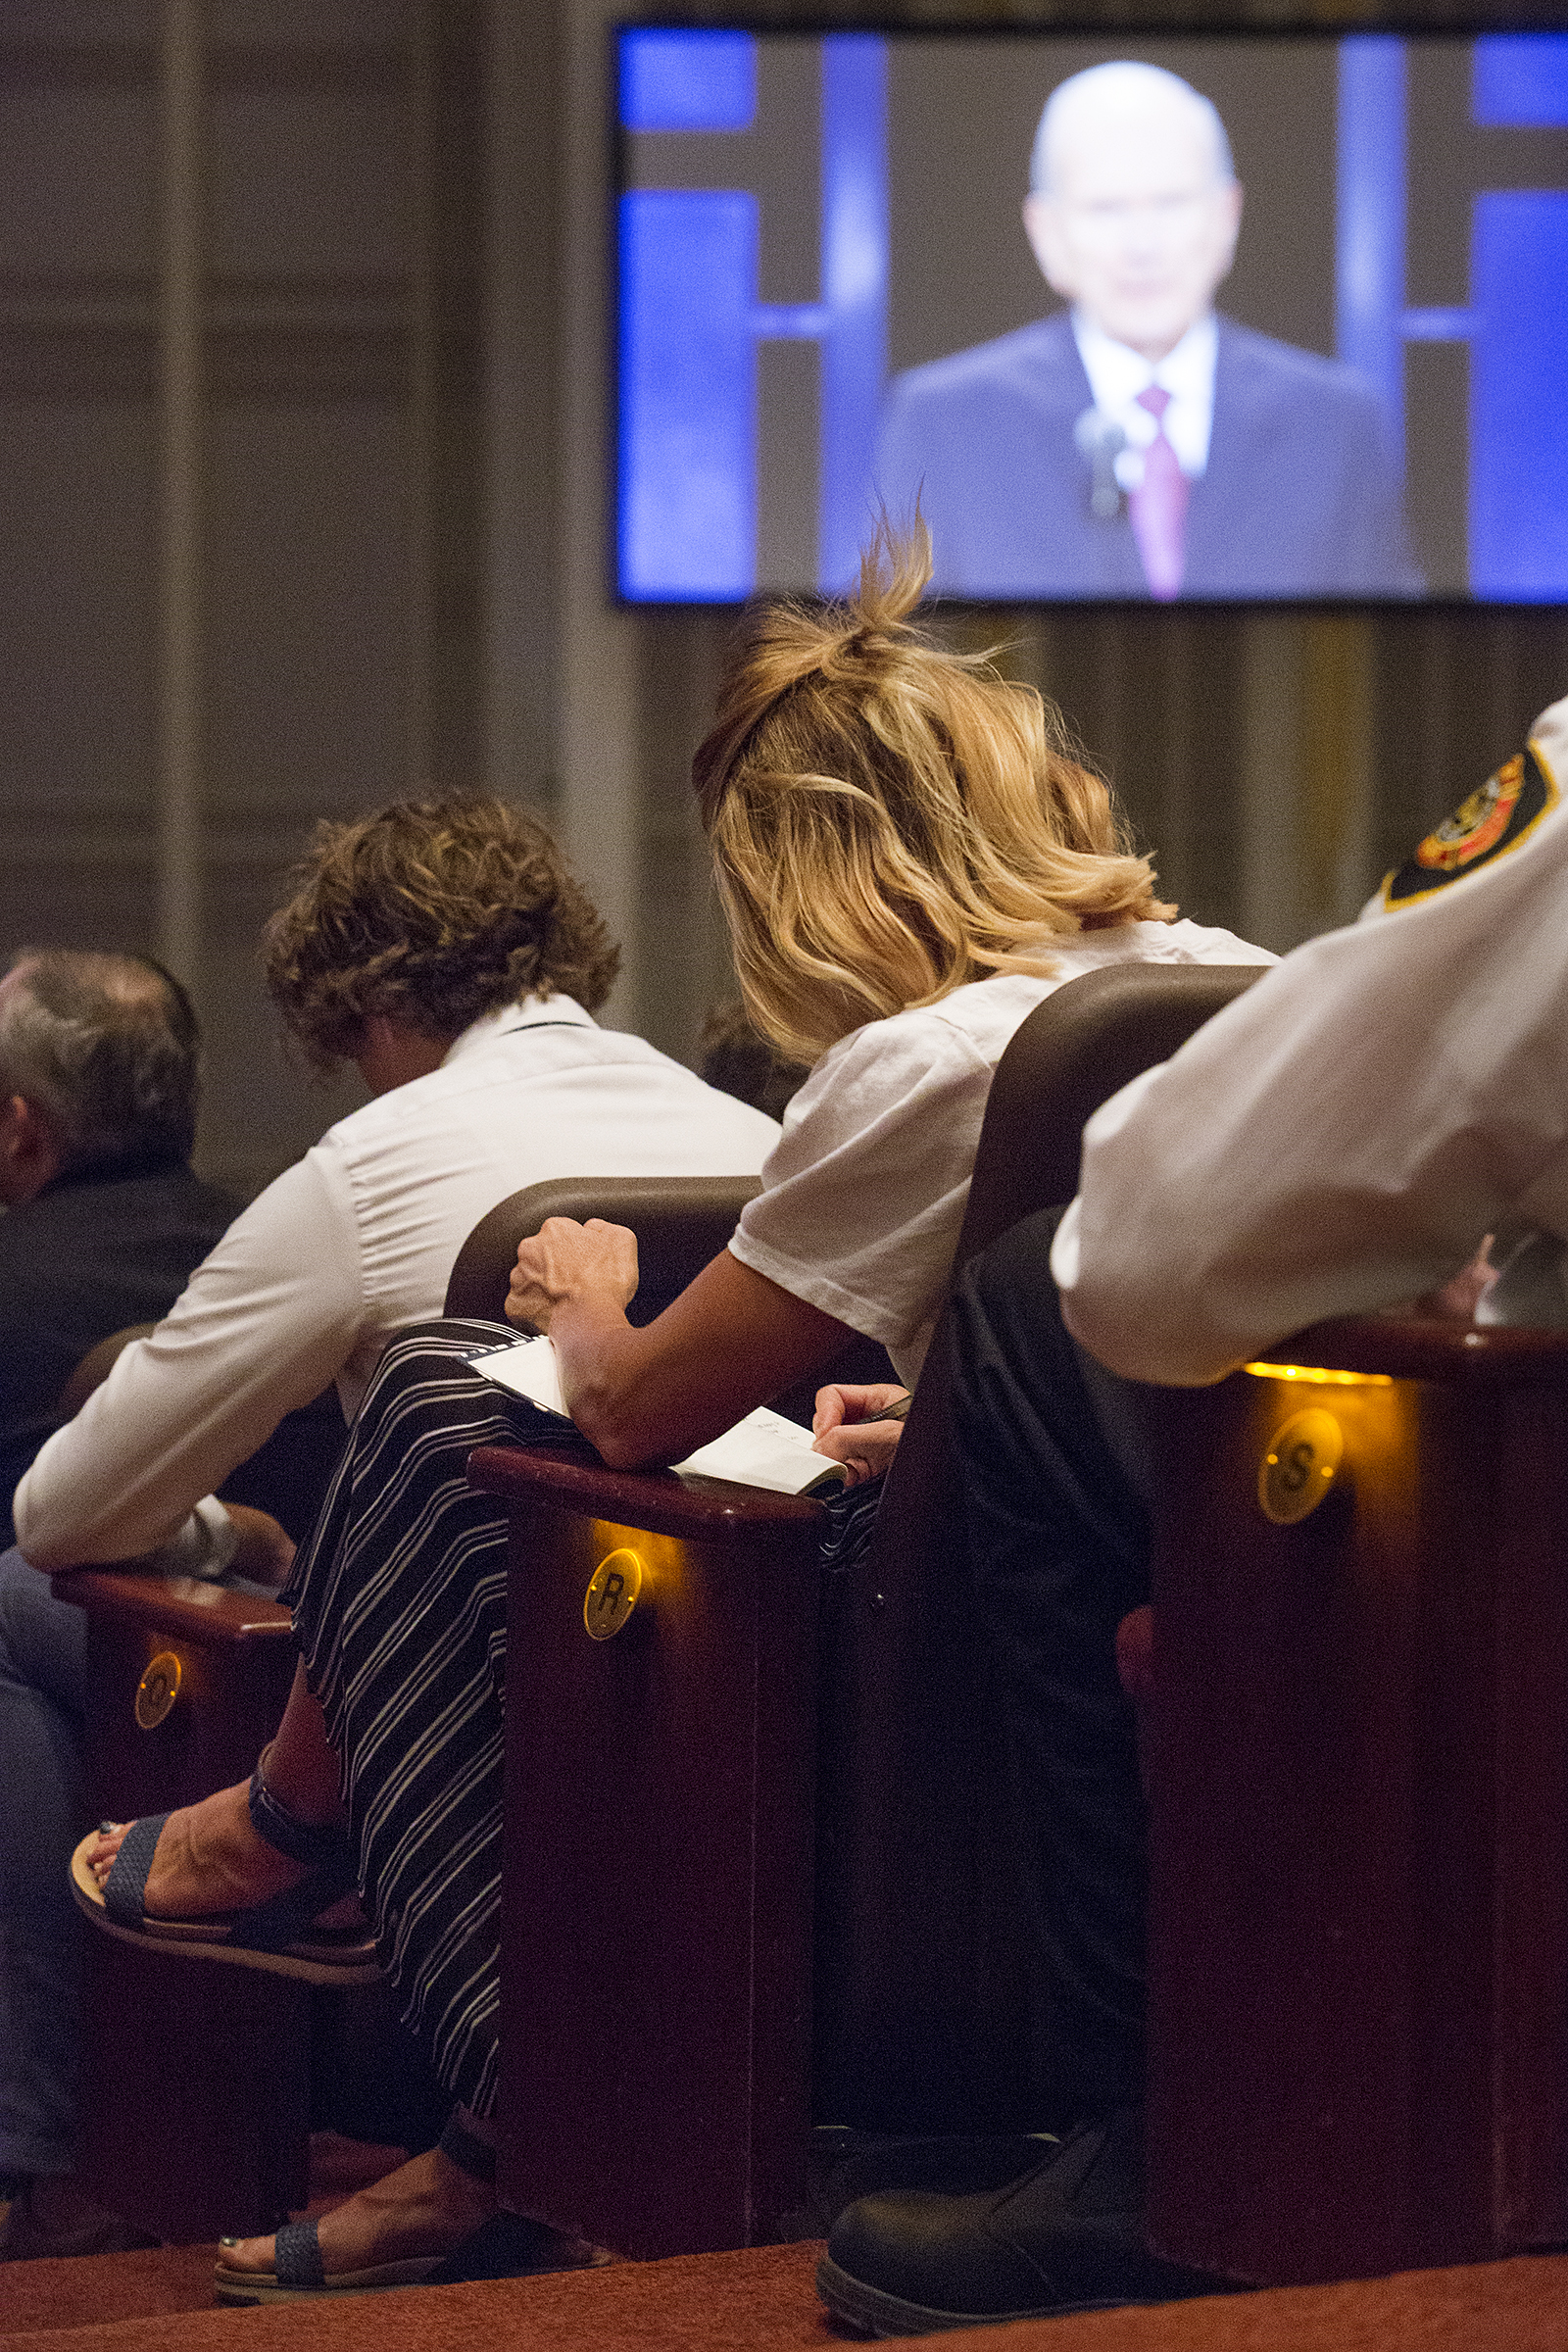 An attendee takes notes as President Russell M. Nelson speaks during the Worldwide Youth Devotional at the Conference Center in Salt Lake City on Sunday, June 3, 2018.